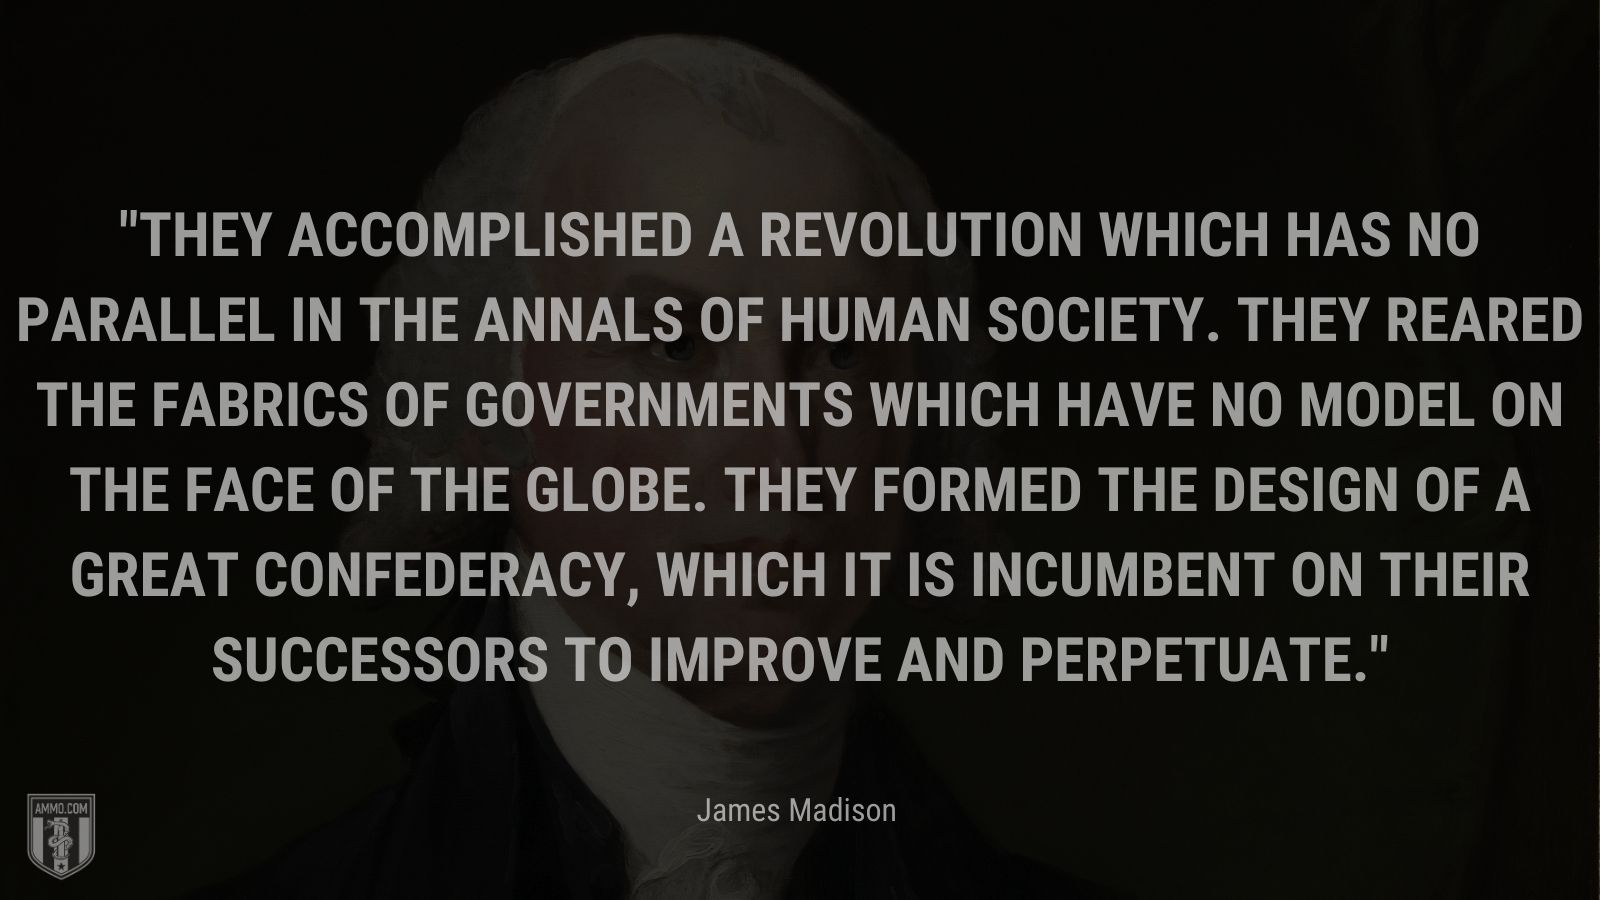 """""""They accomplished a revolution which has no parallel in the annals of human society. They reared the fabrics of governments which have no model on the face of the globe. They formed the design of a great Confederacy, which it is incumbent on their successors to improve and perpetuate."""" - James Madison"""